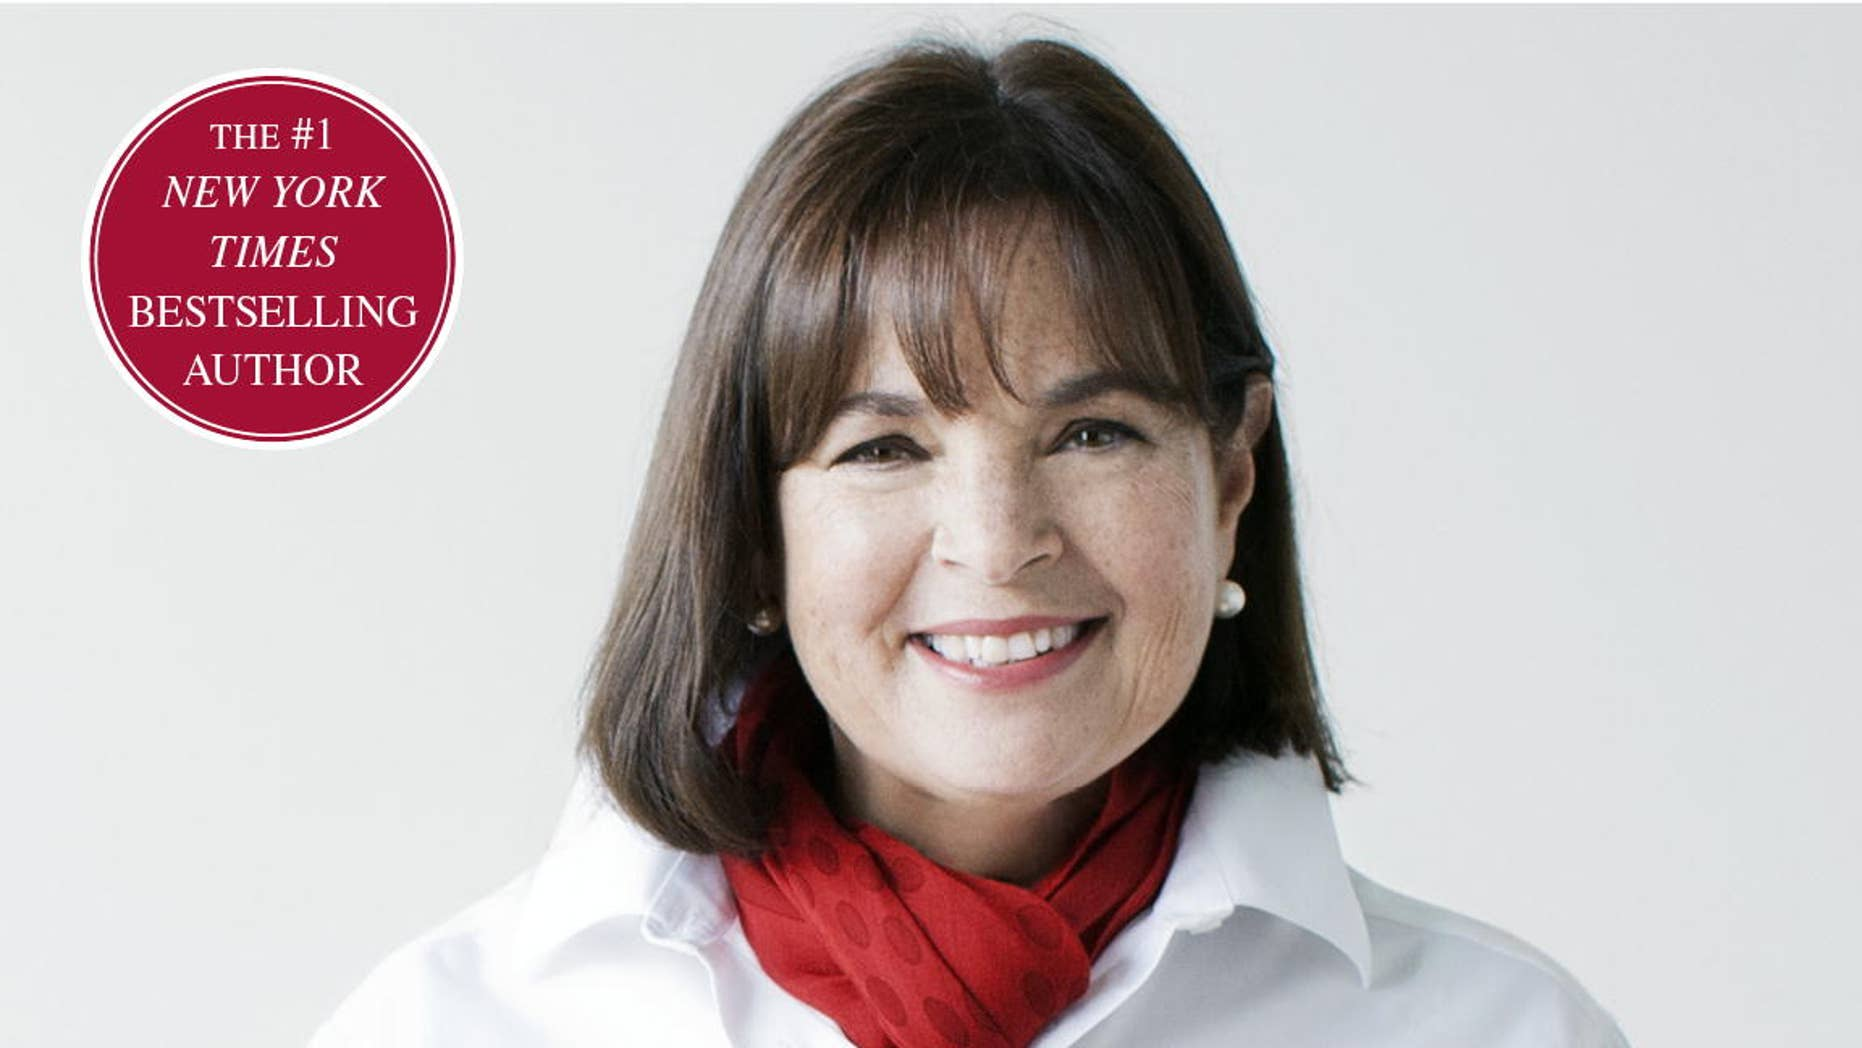 The Barefoot Contessa has reached an agreement in court over brand copyright infringement.